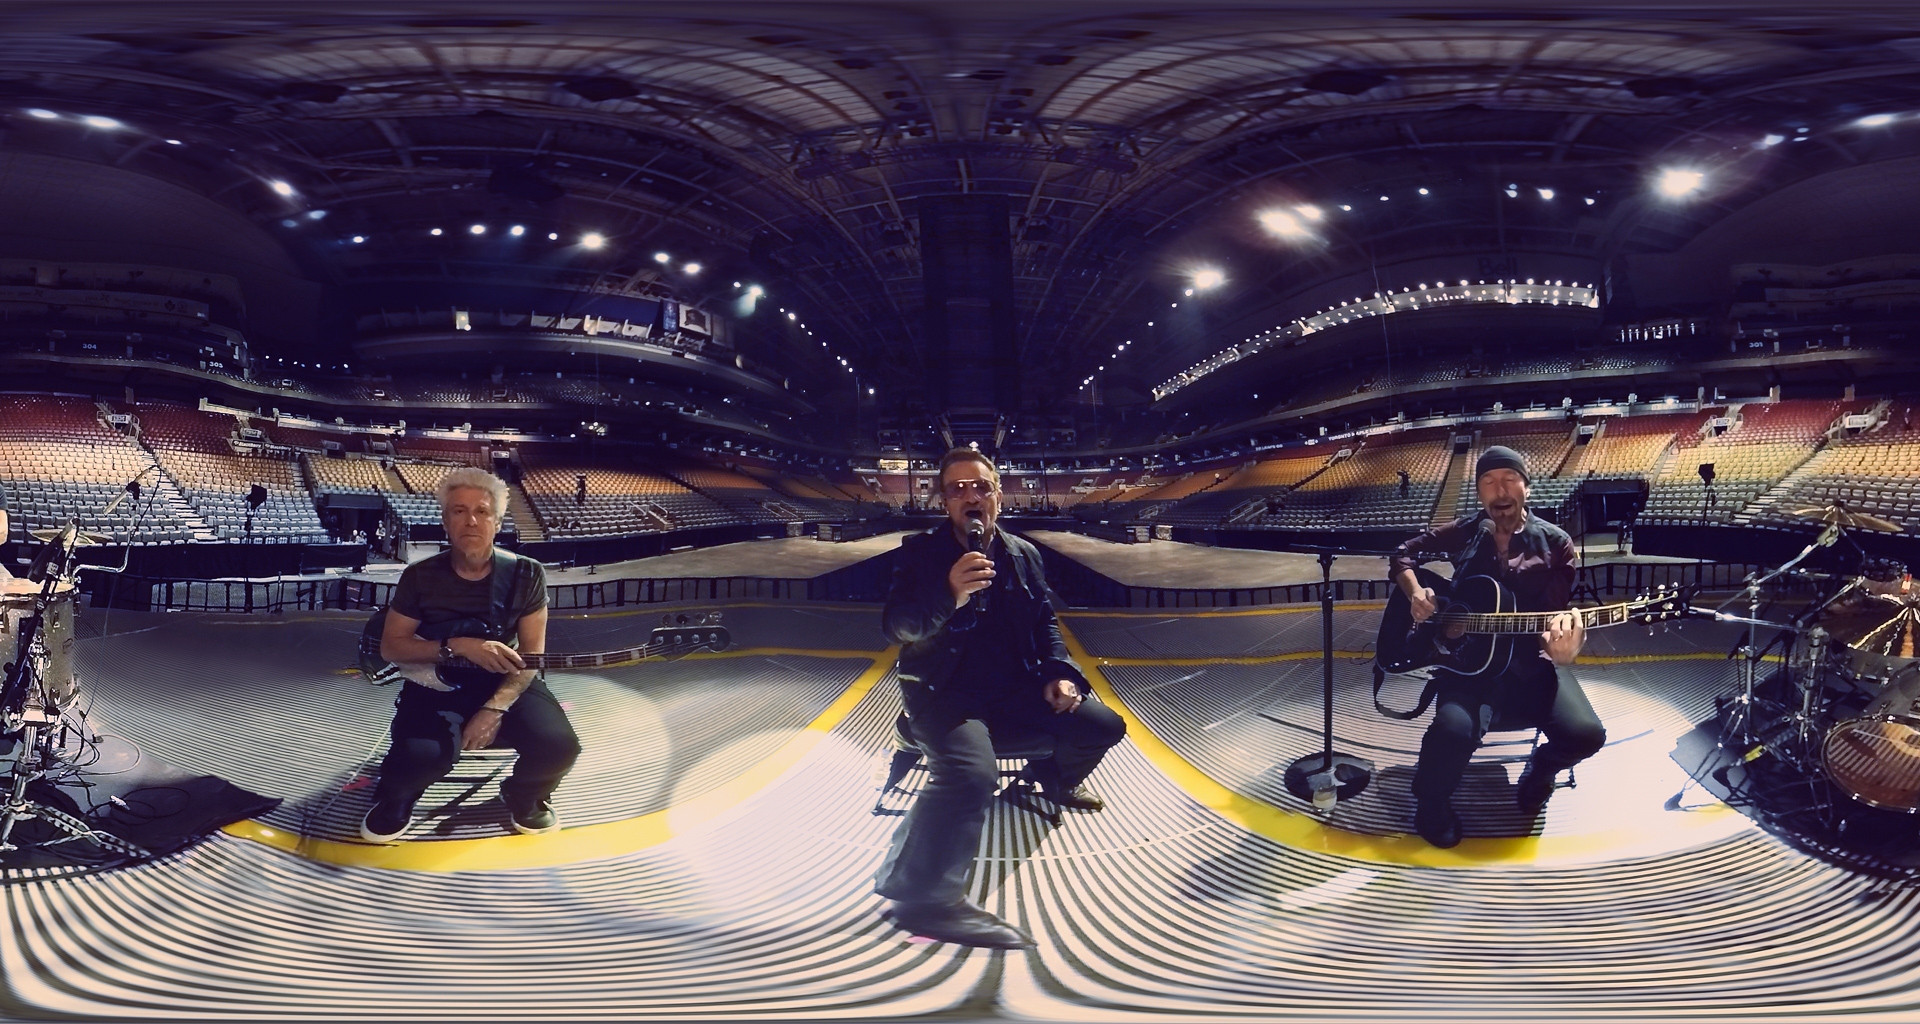 u2 vr video vrse song for someone